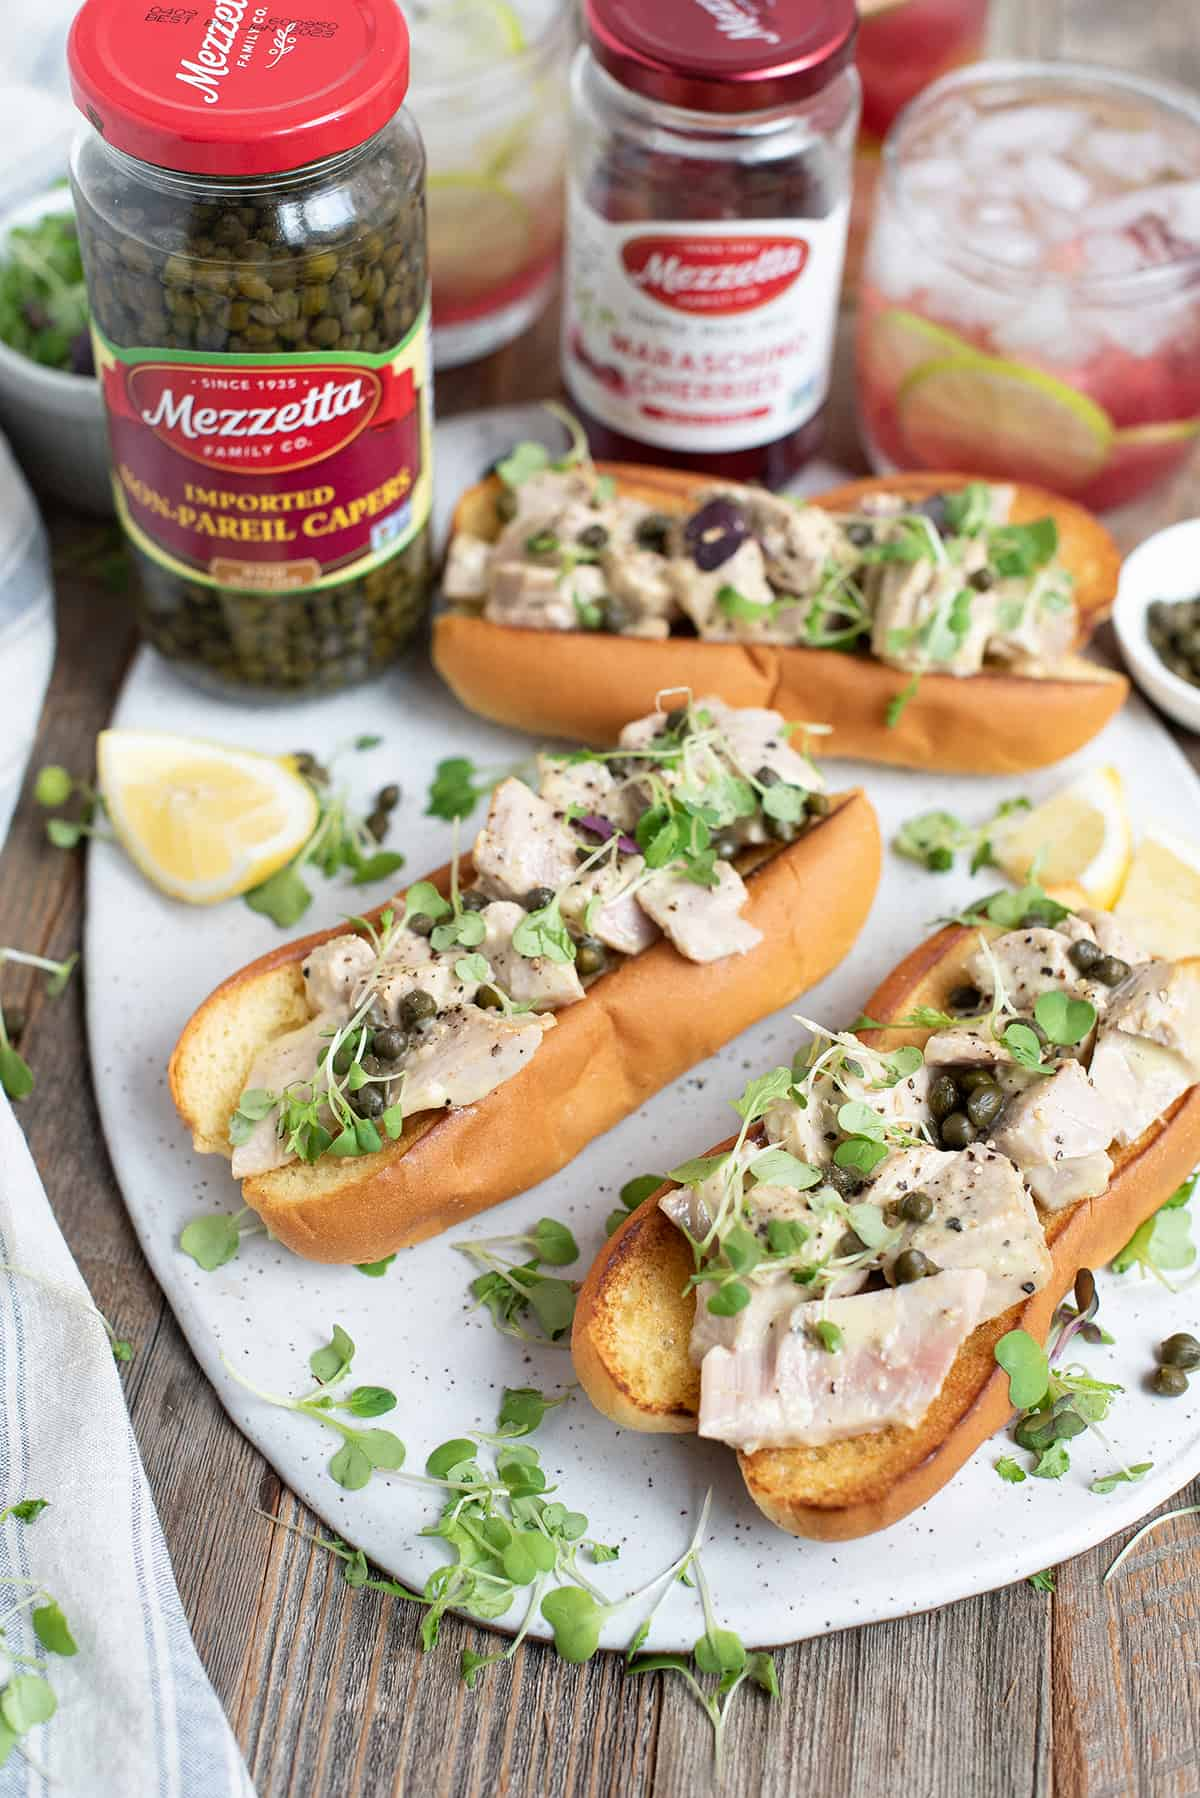 tuna sandwiches in hot dog buns on white platter with capers